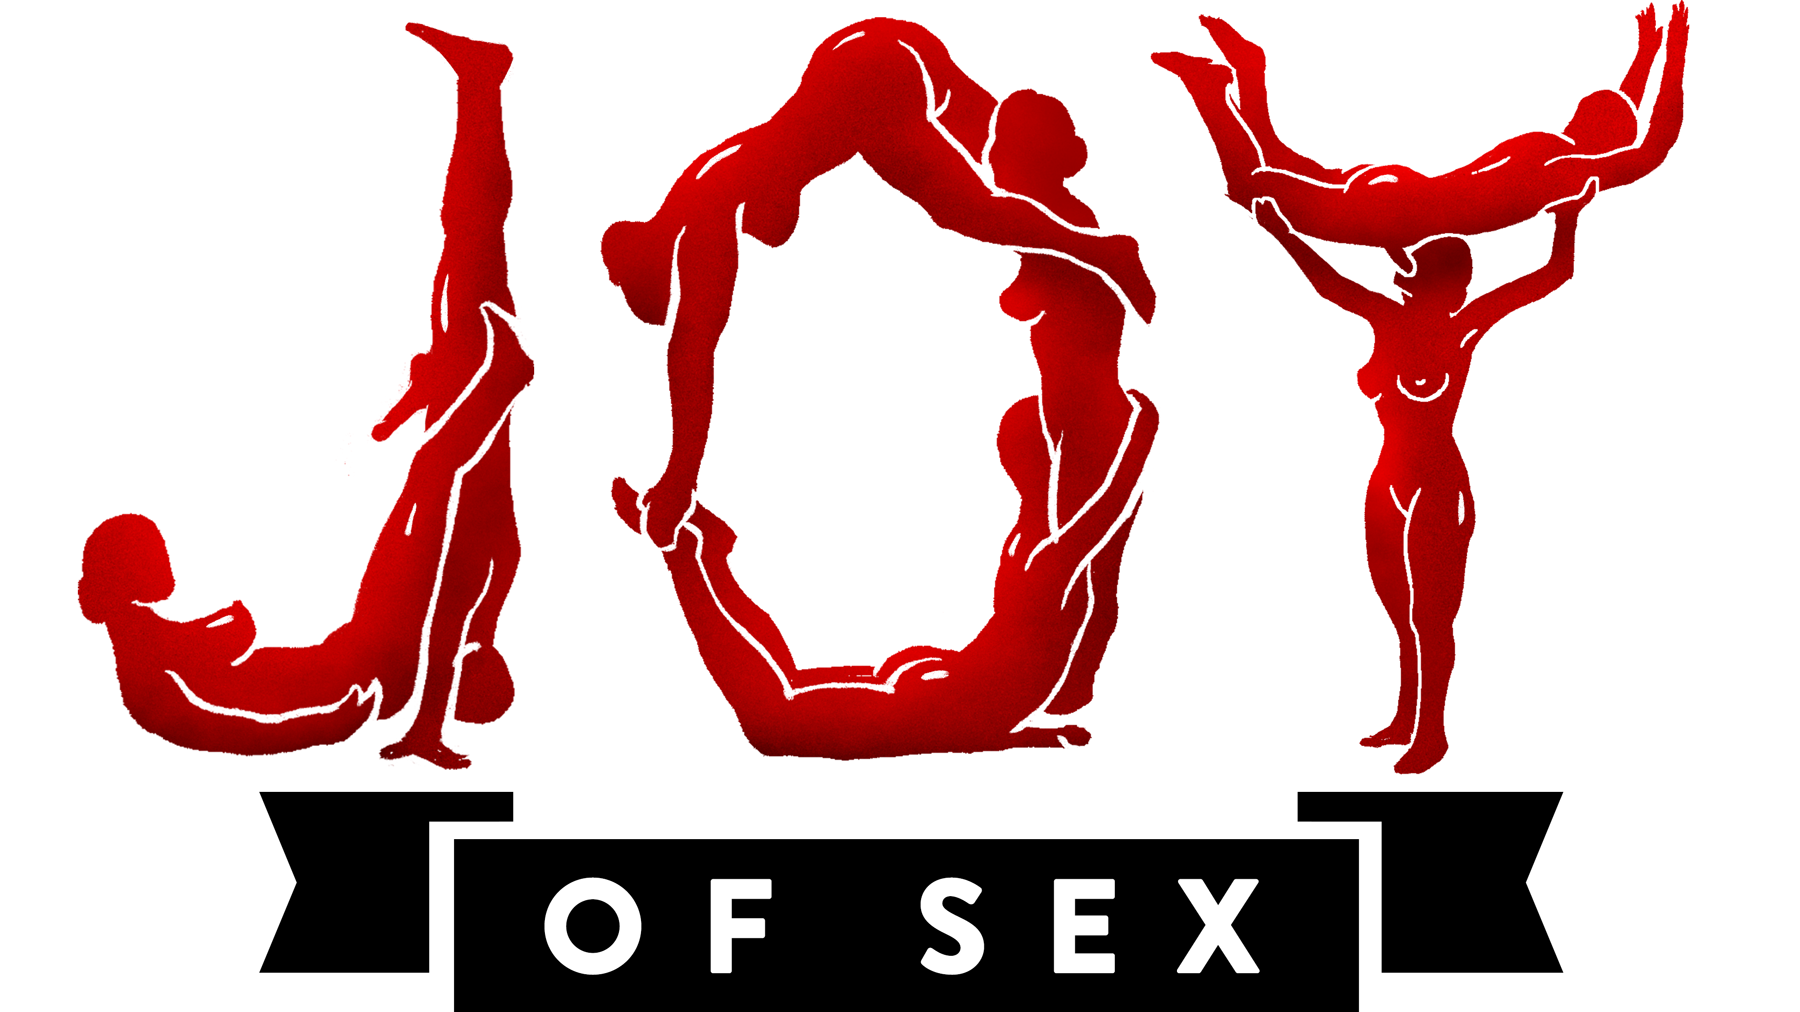 Revisiting The Joy of Sex